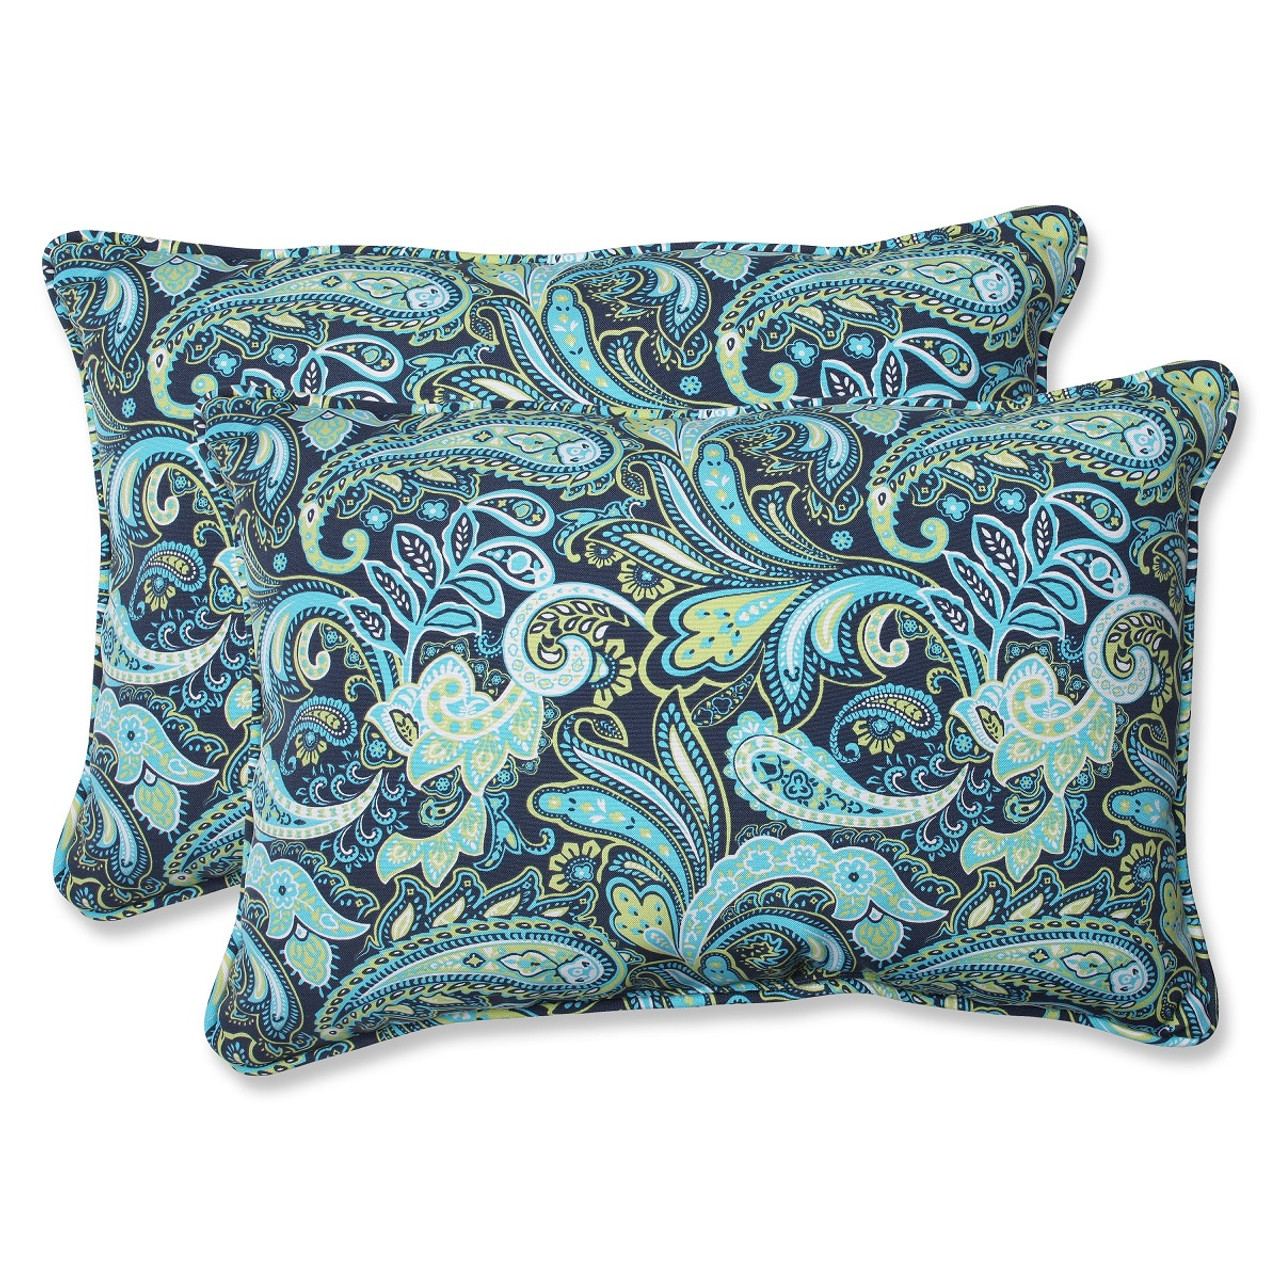 green find on pillows cream lab pom throw guides cheap quotations blue deals get baby line spa at trend waverly pillow decorative shopping